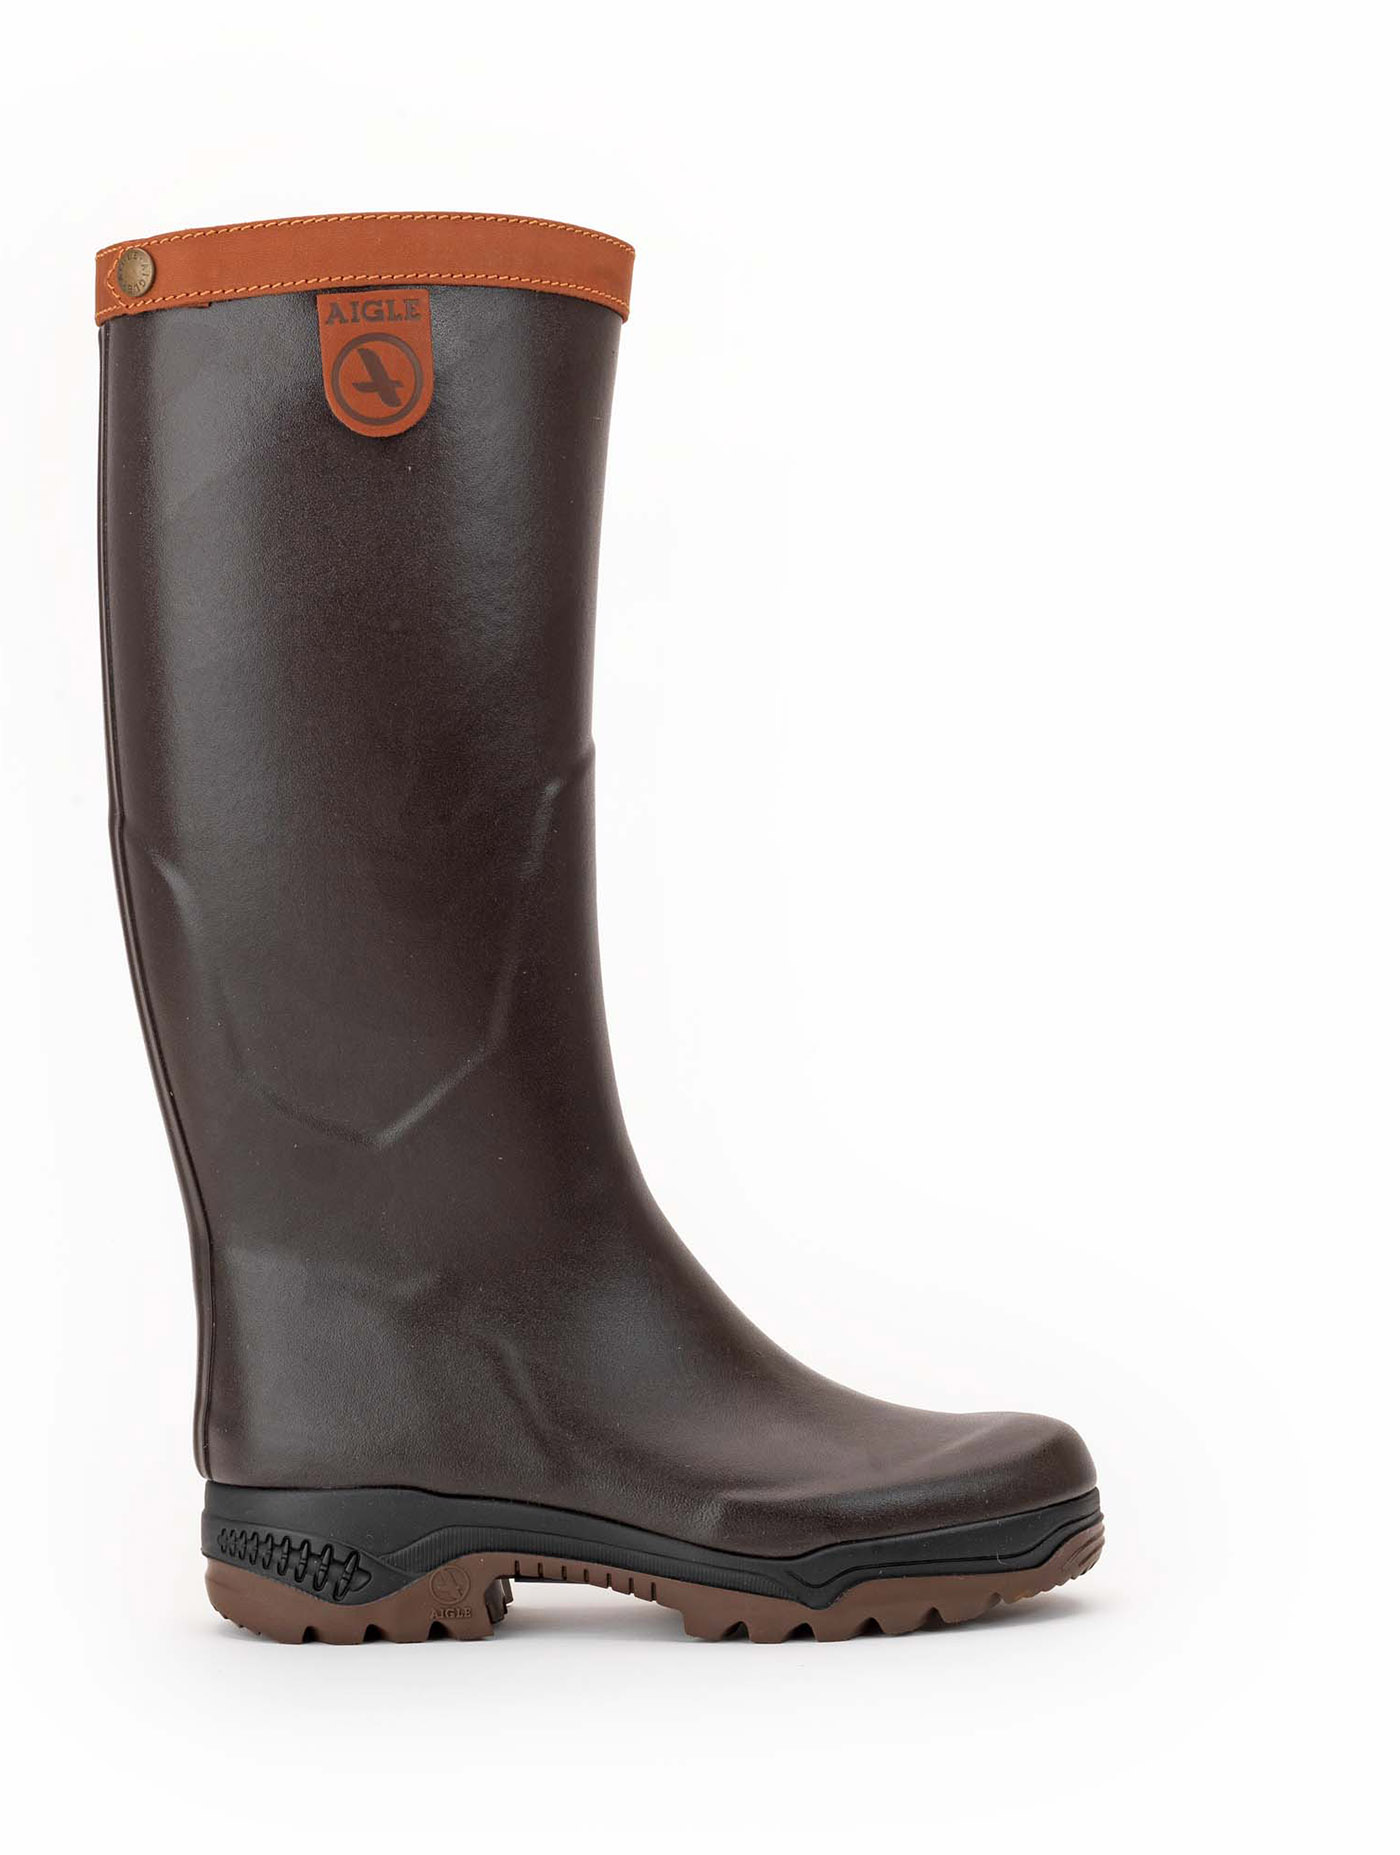 PARCOURS® 2 SIGNATURE CLASSIC| Men's leather lined hunting